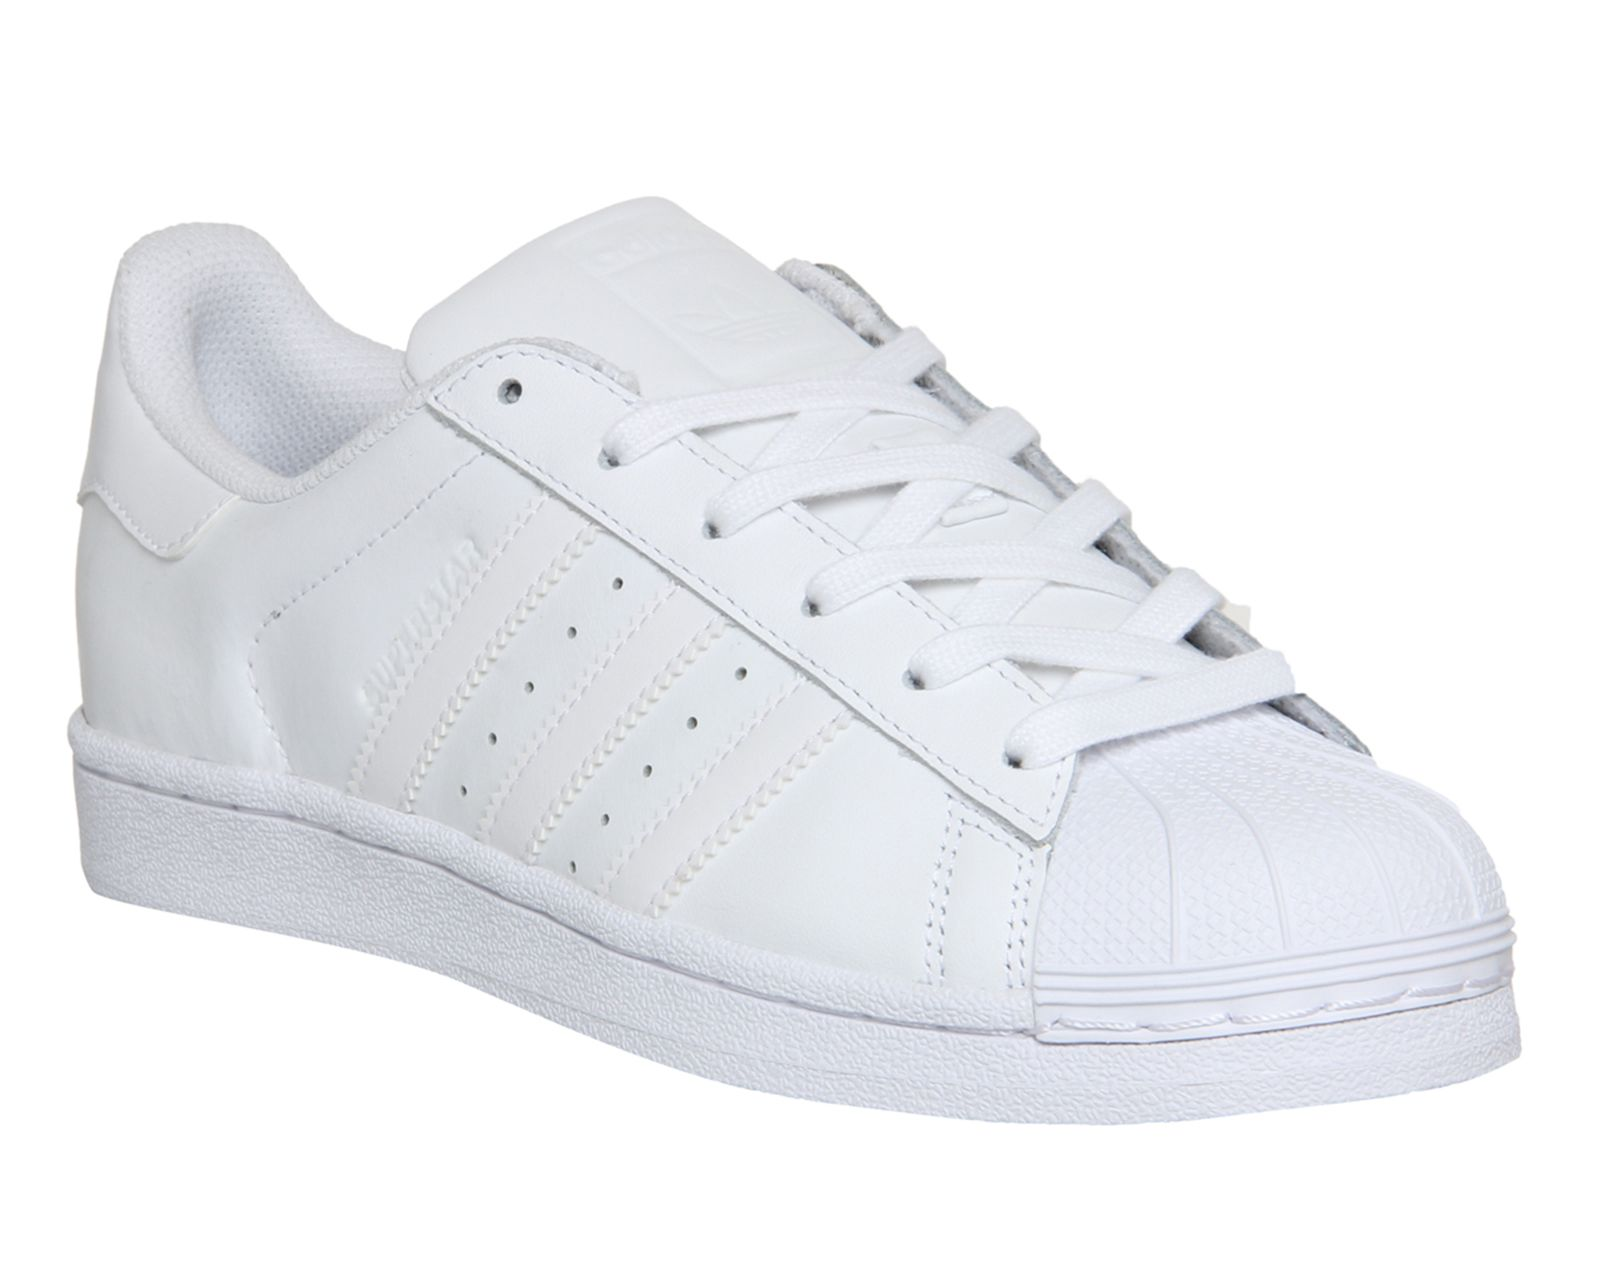 Adidas Superstar Vulc ADV Skate Shoes Crystal White/White/Green